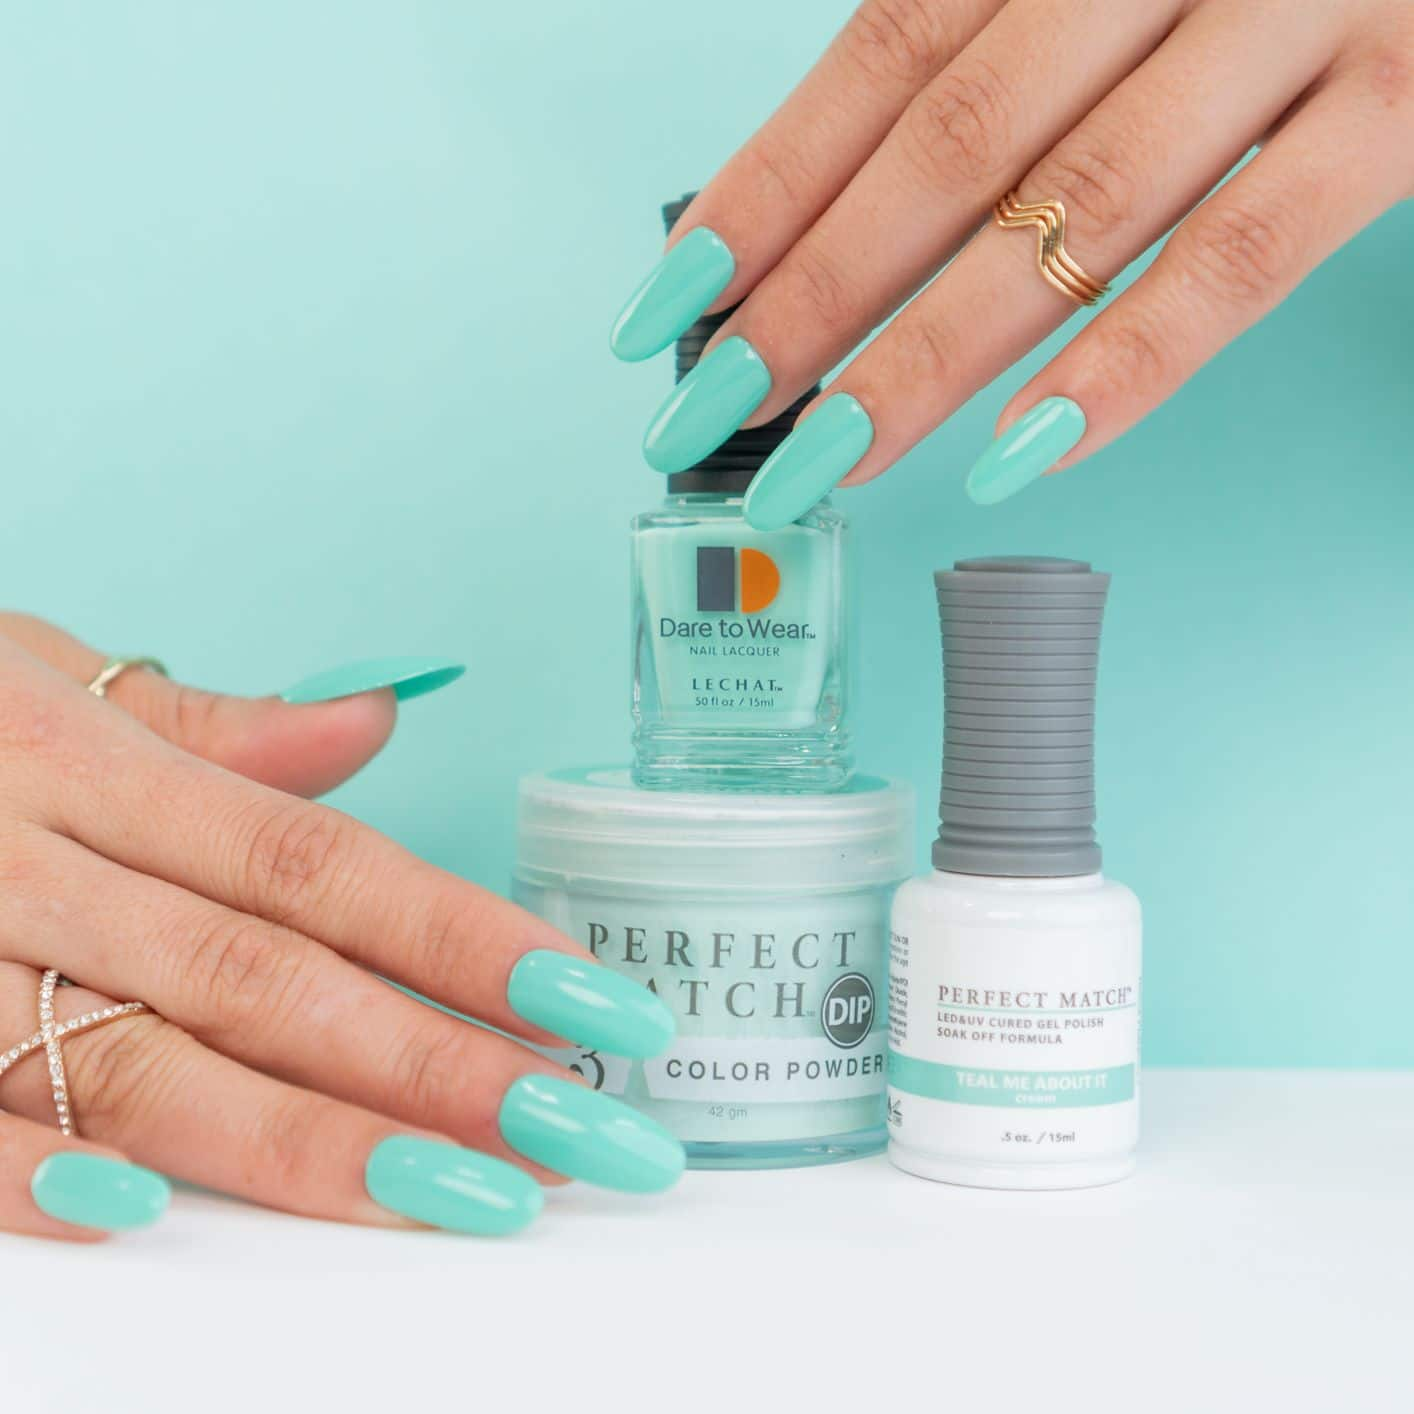 LeChat's Teal Me About it set of DW, PM and Dip powder